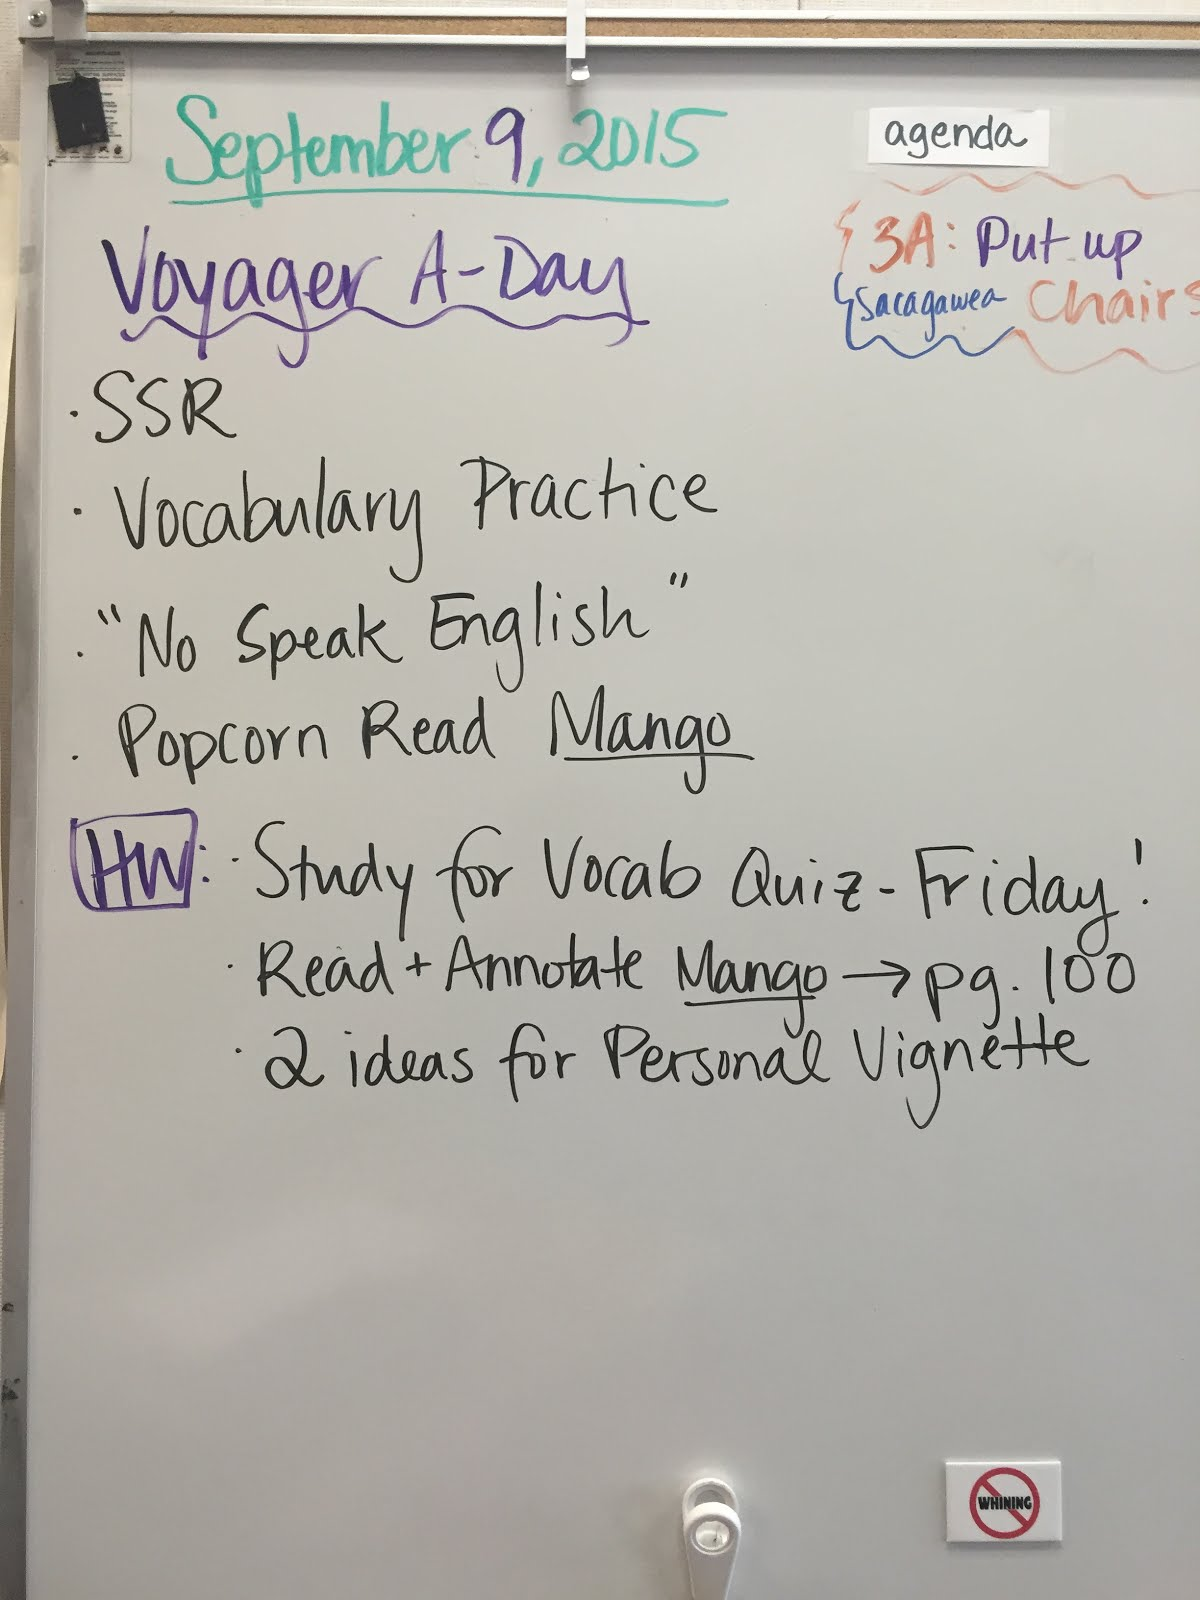 Ms. Schieffer\'s English Class: Voyager Agenda and Homework 9/9